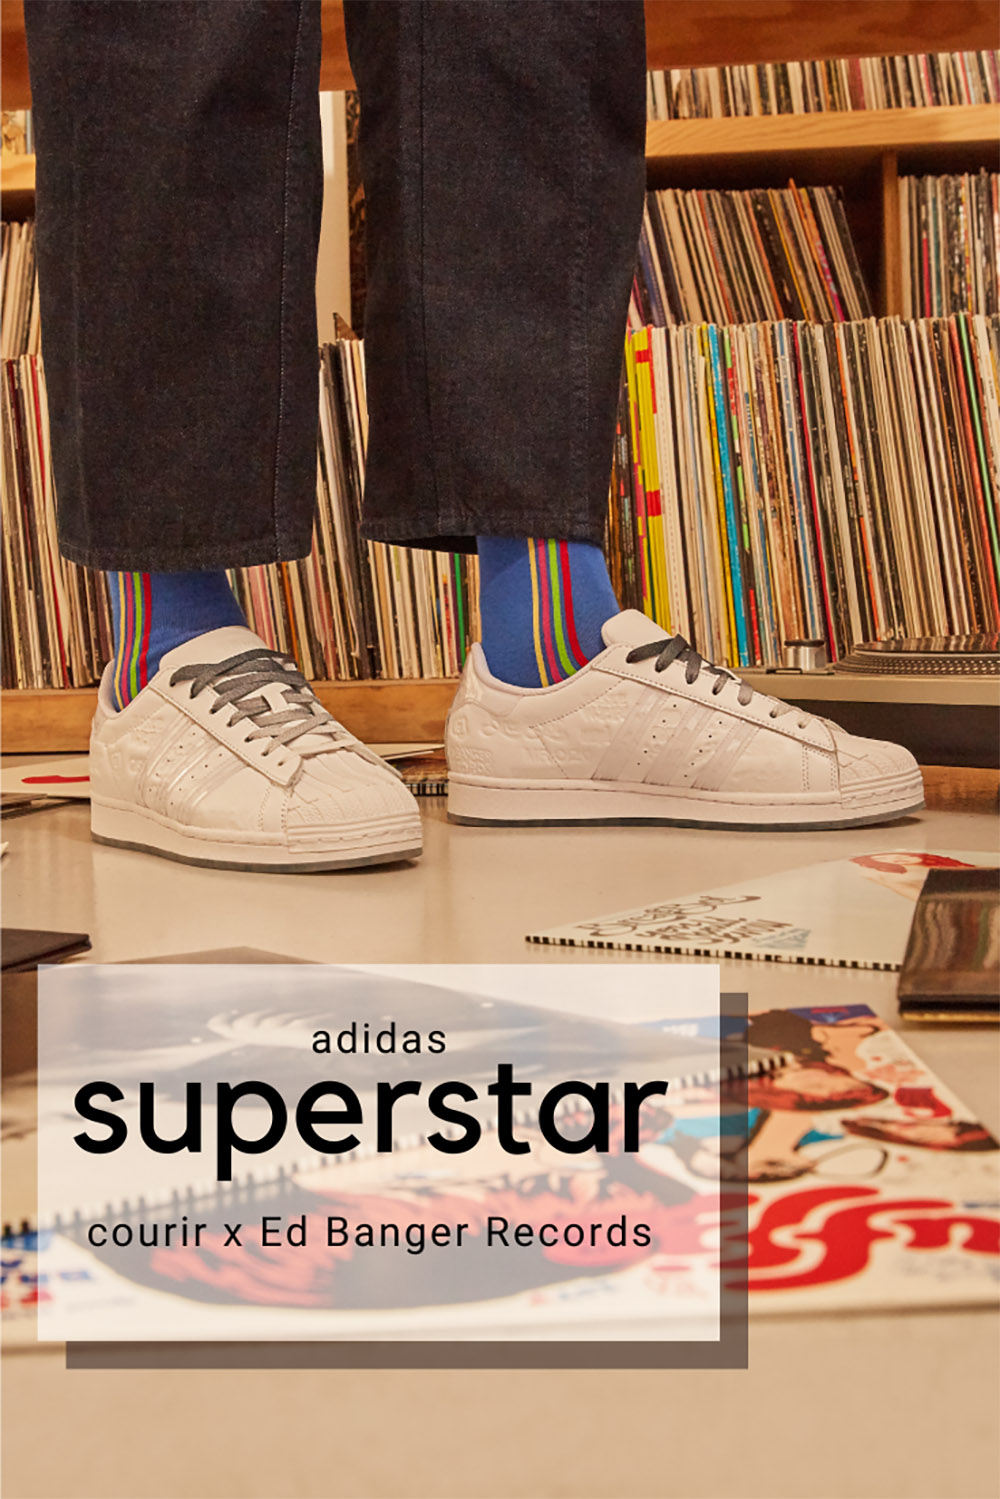 Courir 40 ans x Ed Banger Records x adidas Superstar